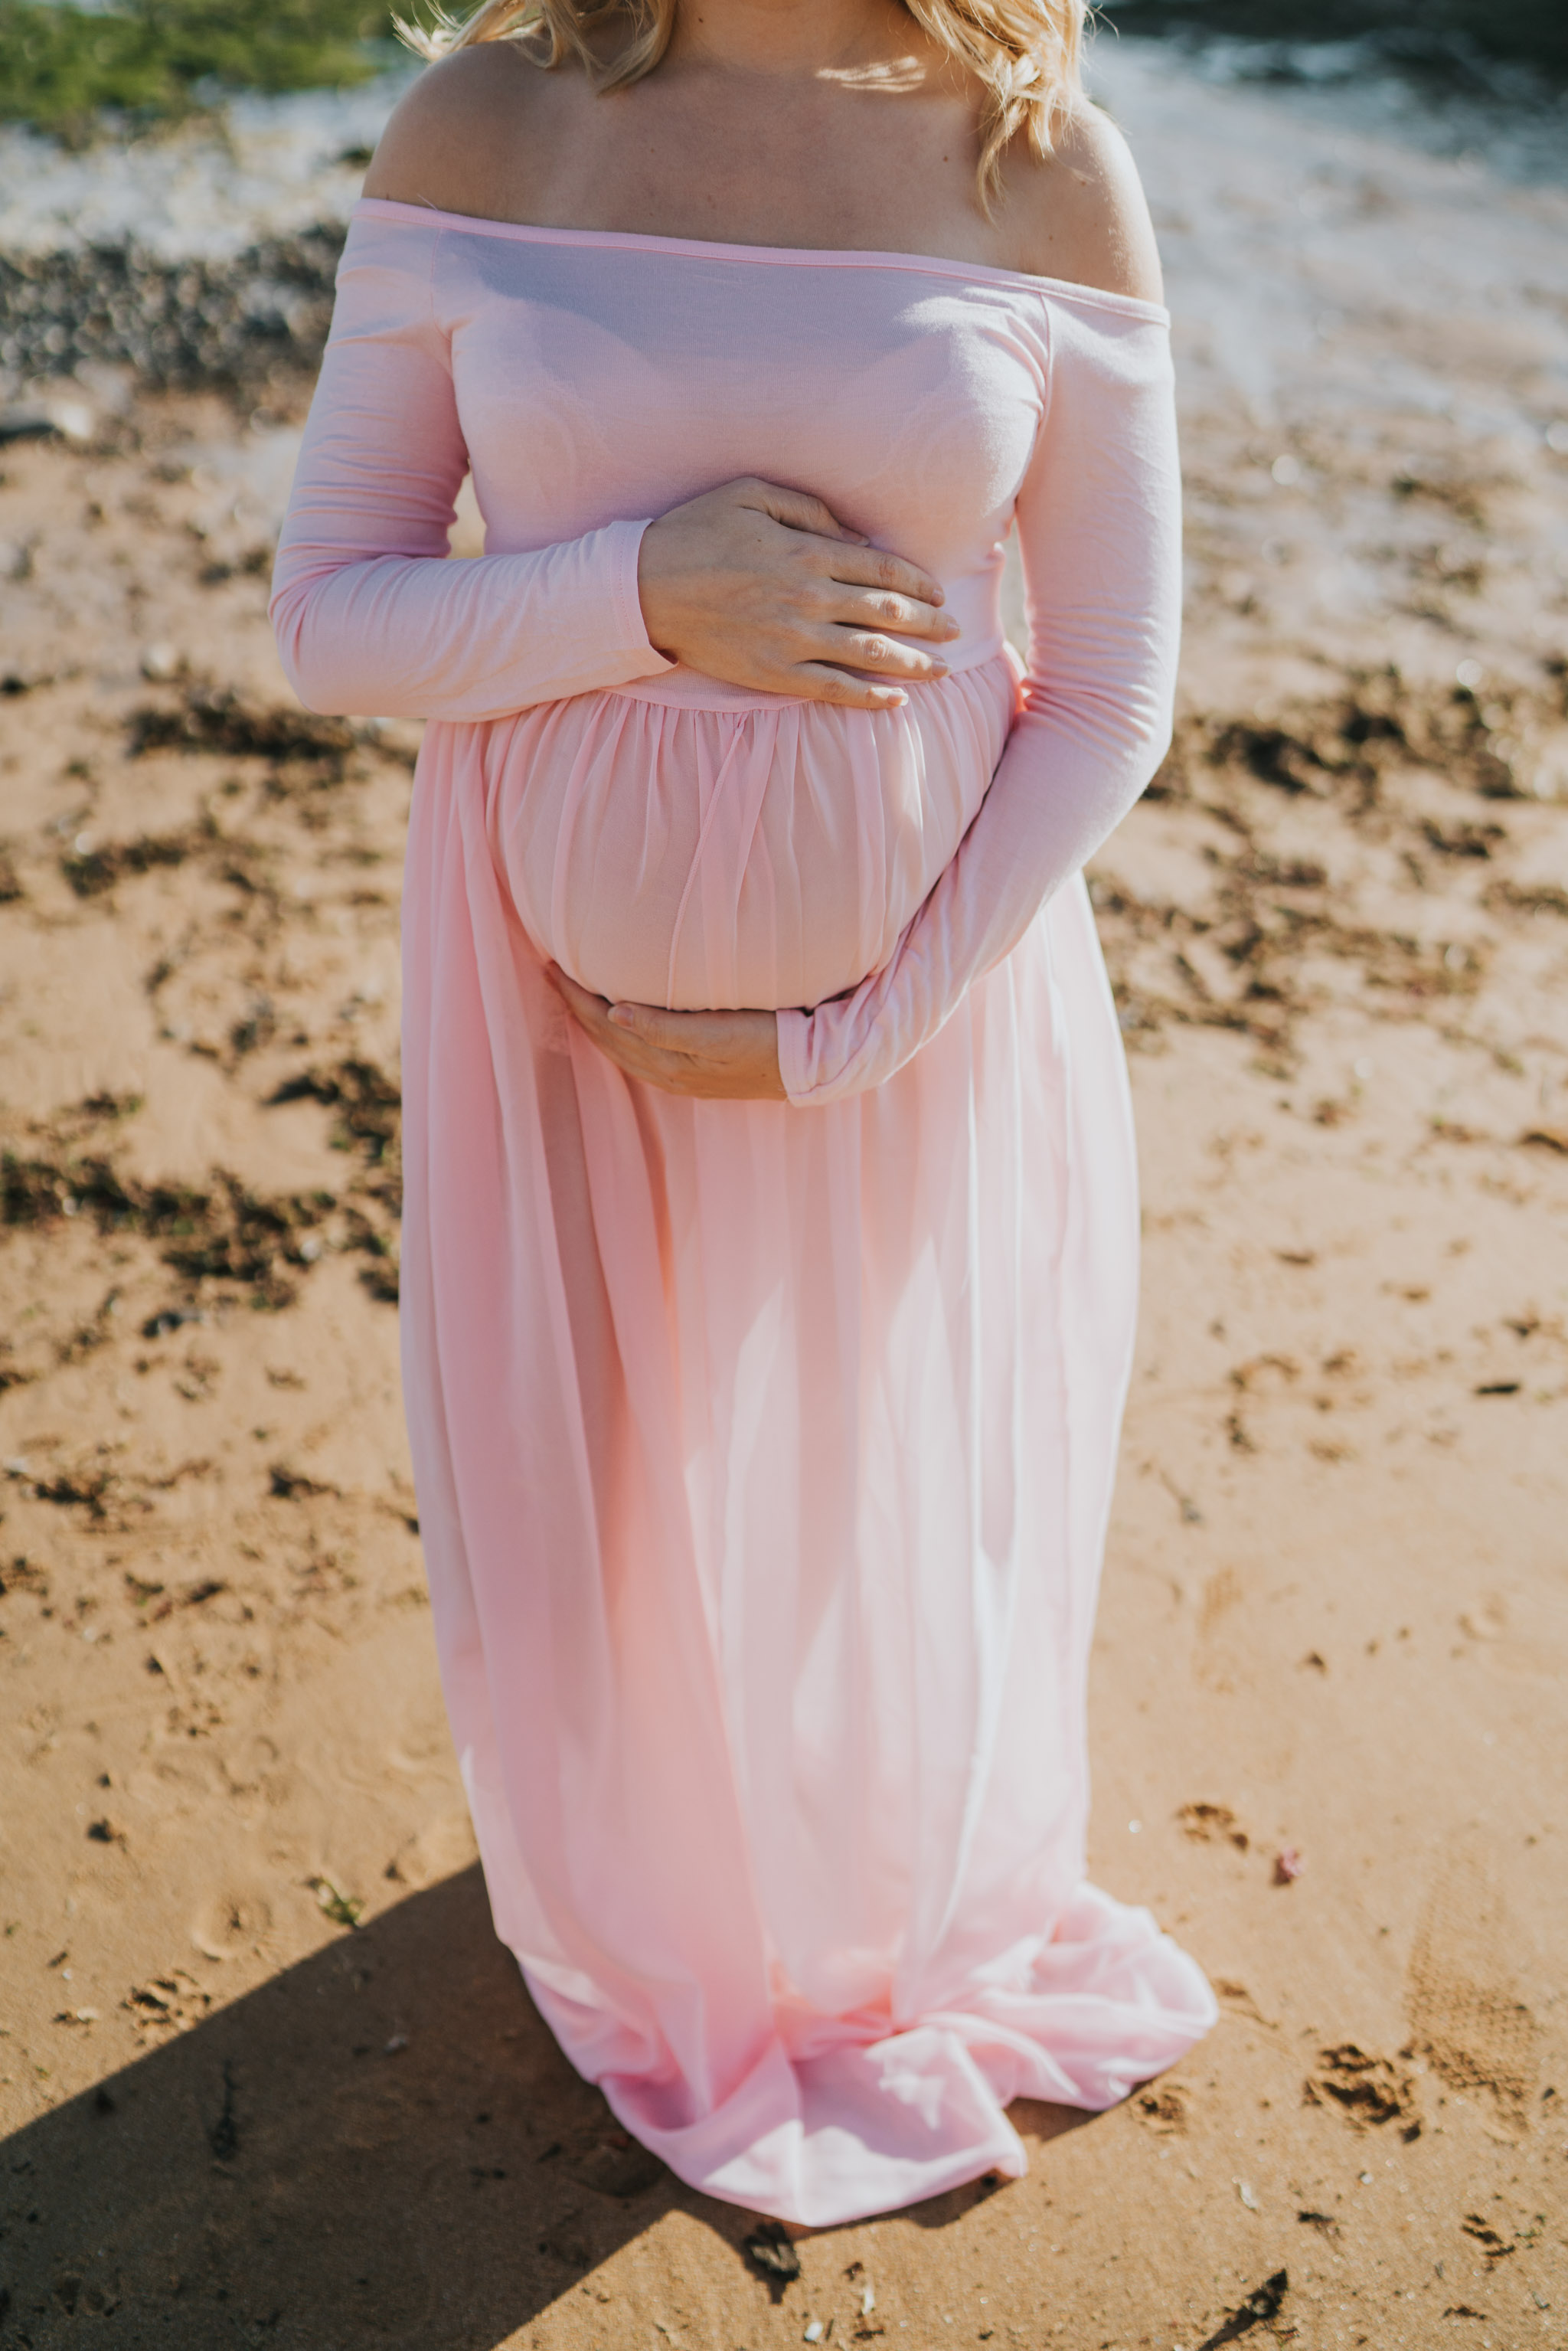 jess-kerion-maternity-27-weeks-pregnant-baby-girl-grace-elizabeth-colchester-essex-alternative-wedding-lifestyle-photographer-norfolk-suffolk-devon-kent-lifestyle-session (15 of 41).jpg